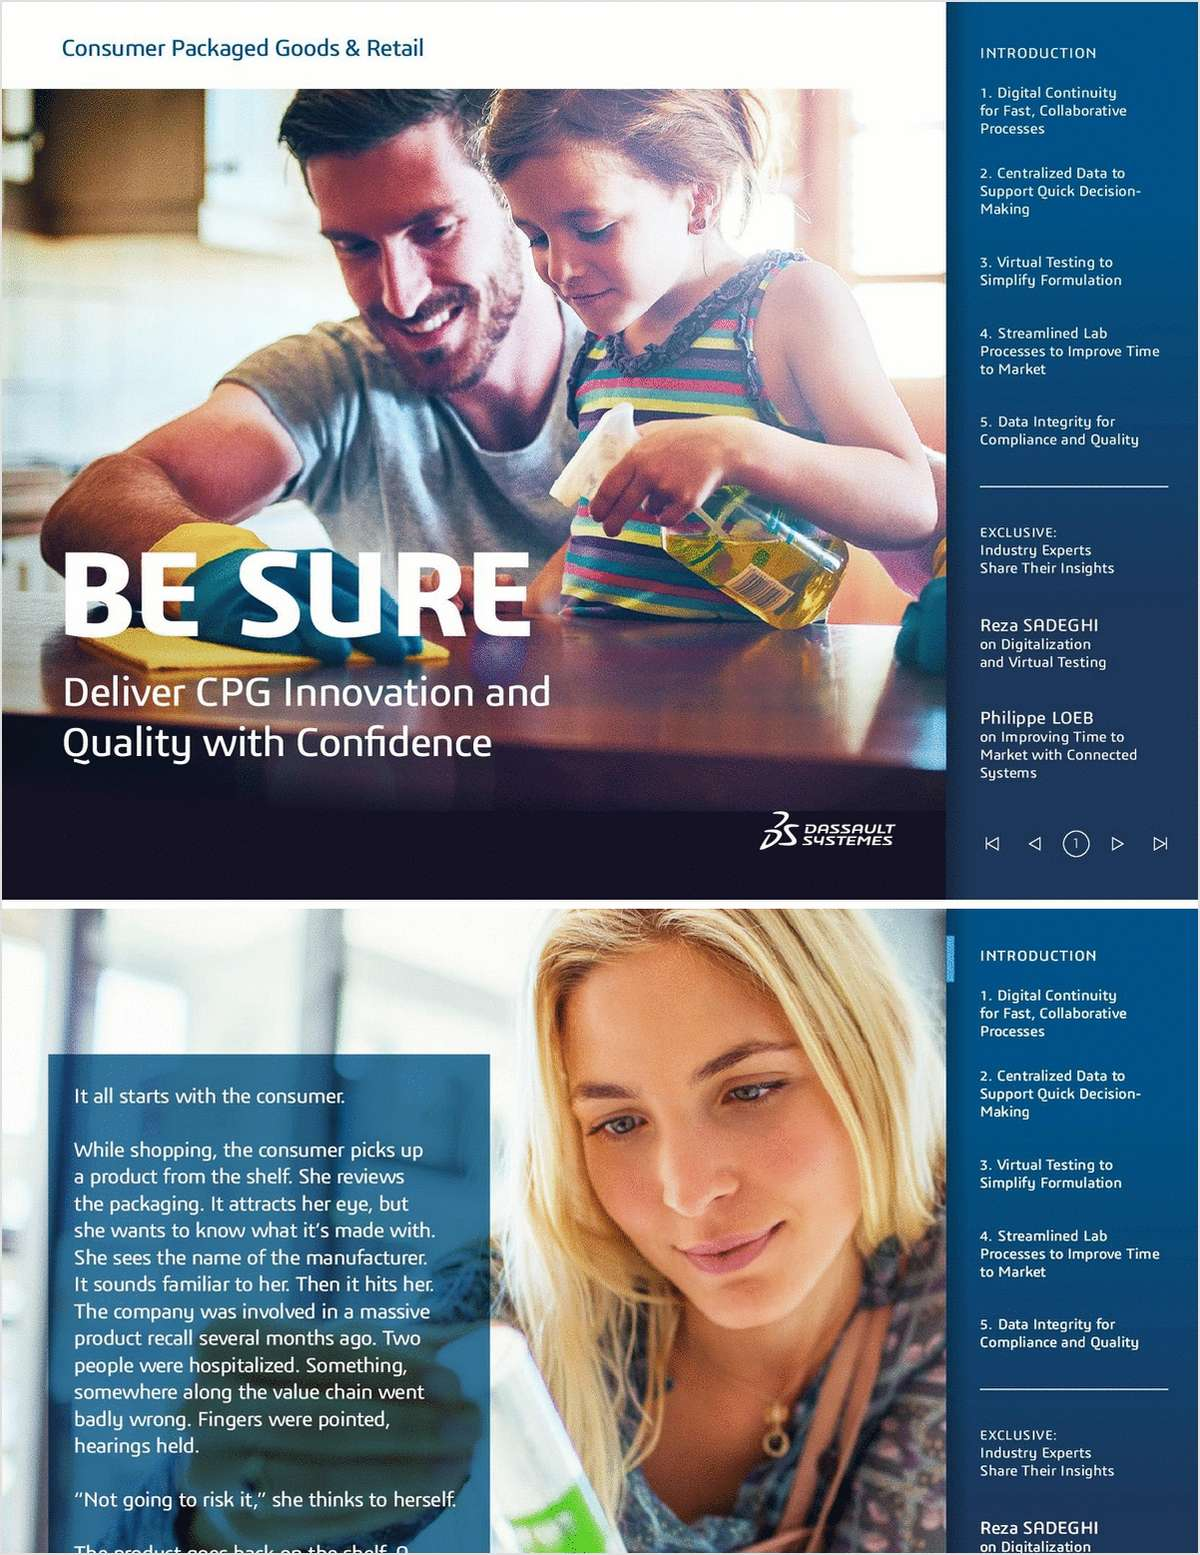 Be Sure: Deliver CPG Innovation and Quality With Confidence